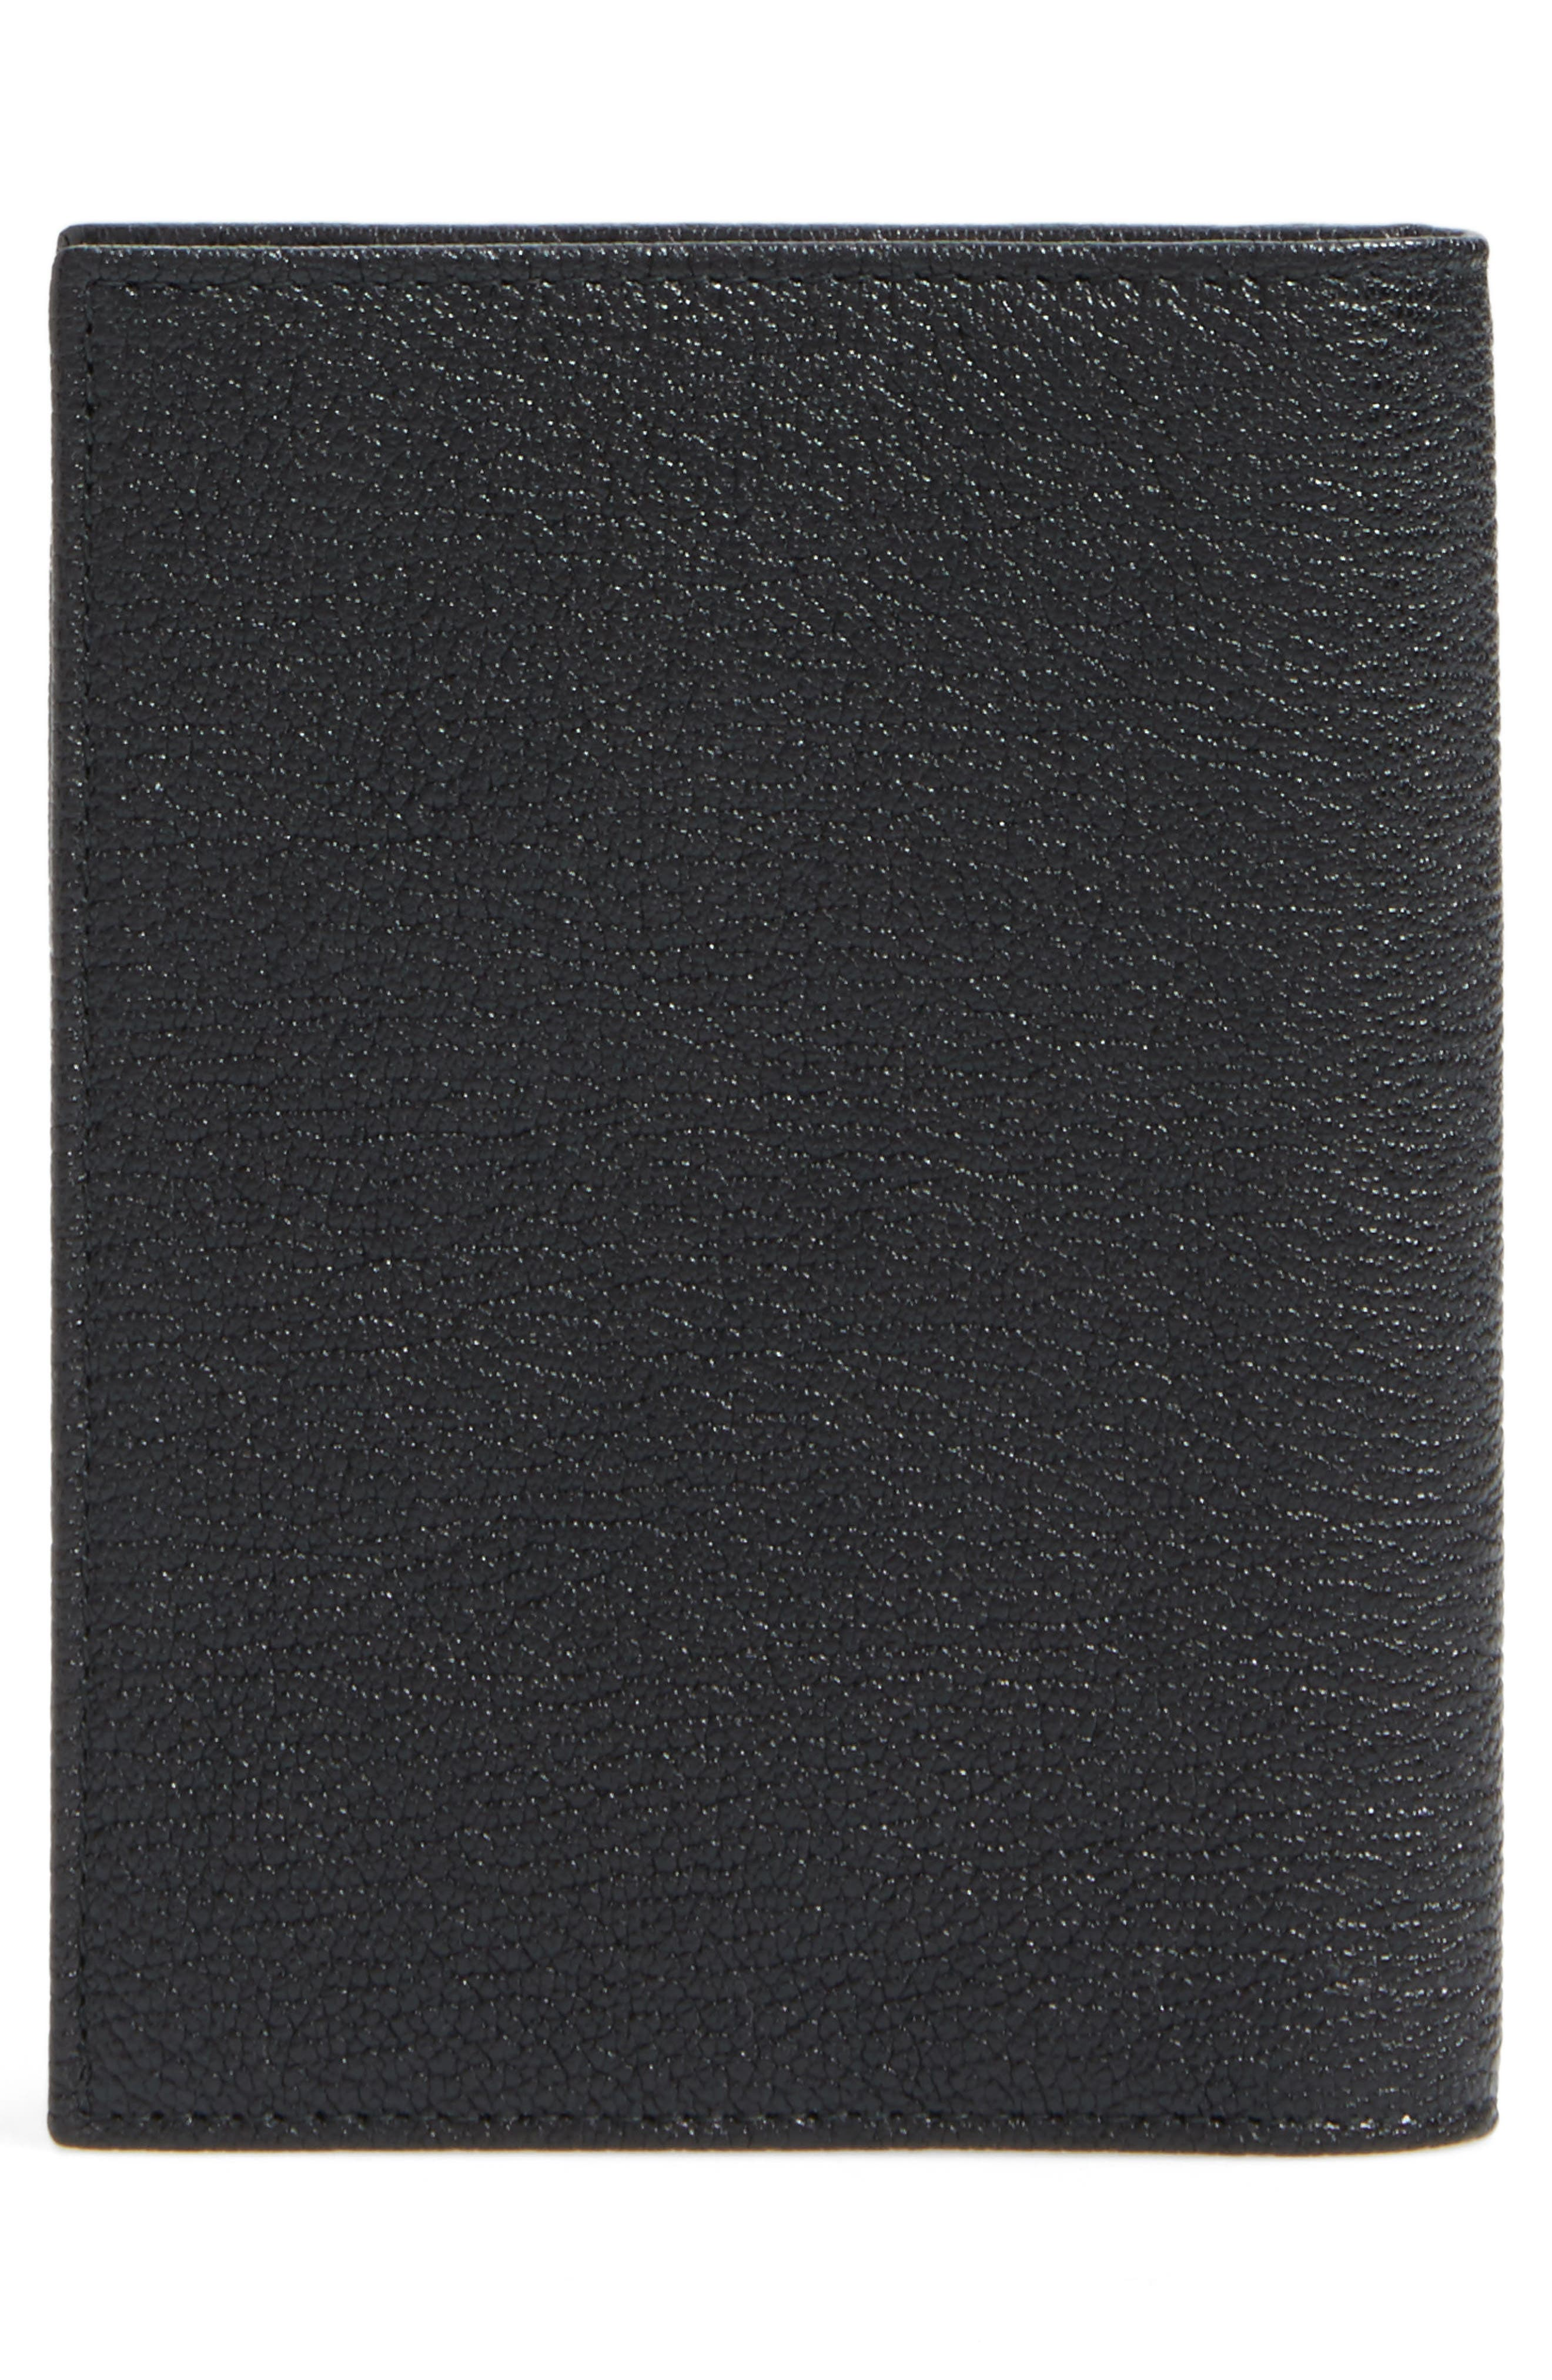 Leather Passport Case,                             Alternate thumbnail 3, color,                             Nero